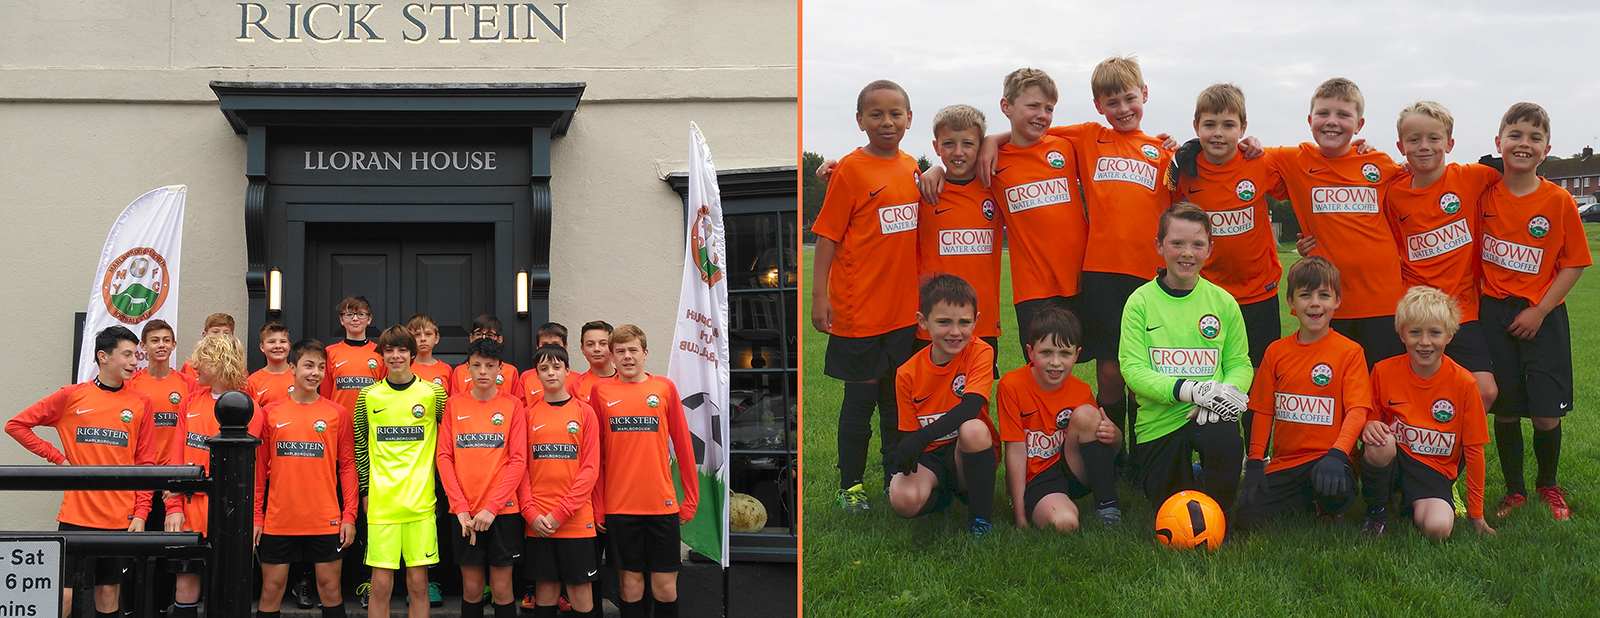 U14s in the news Rick Stein sponsored kit on the steps of the Marlborough restaurant along with the U9 team in their new Crown Water & Coffee sponsored kit